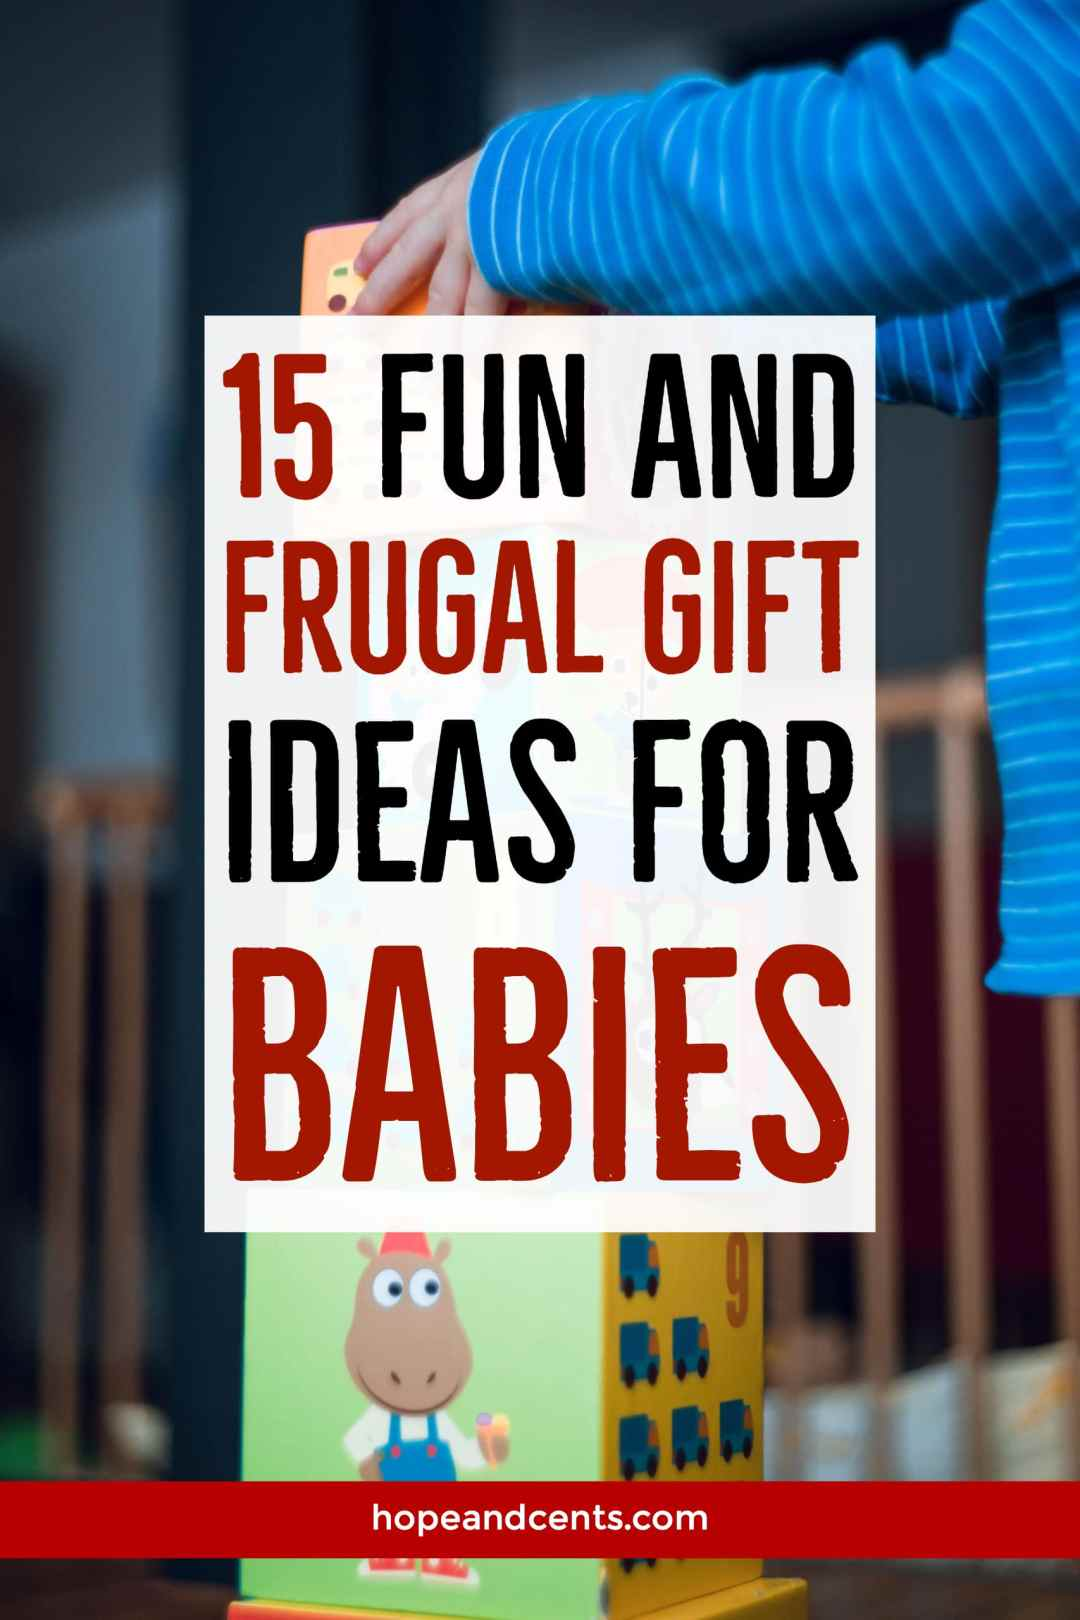 Have a baby to shop for? Give the perfect gift with these 15 fun and frugal gift ideas for babies. These are perfect for Christmas, birthdays, and baby showers.